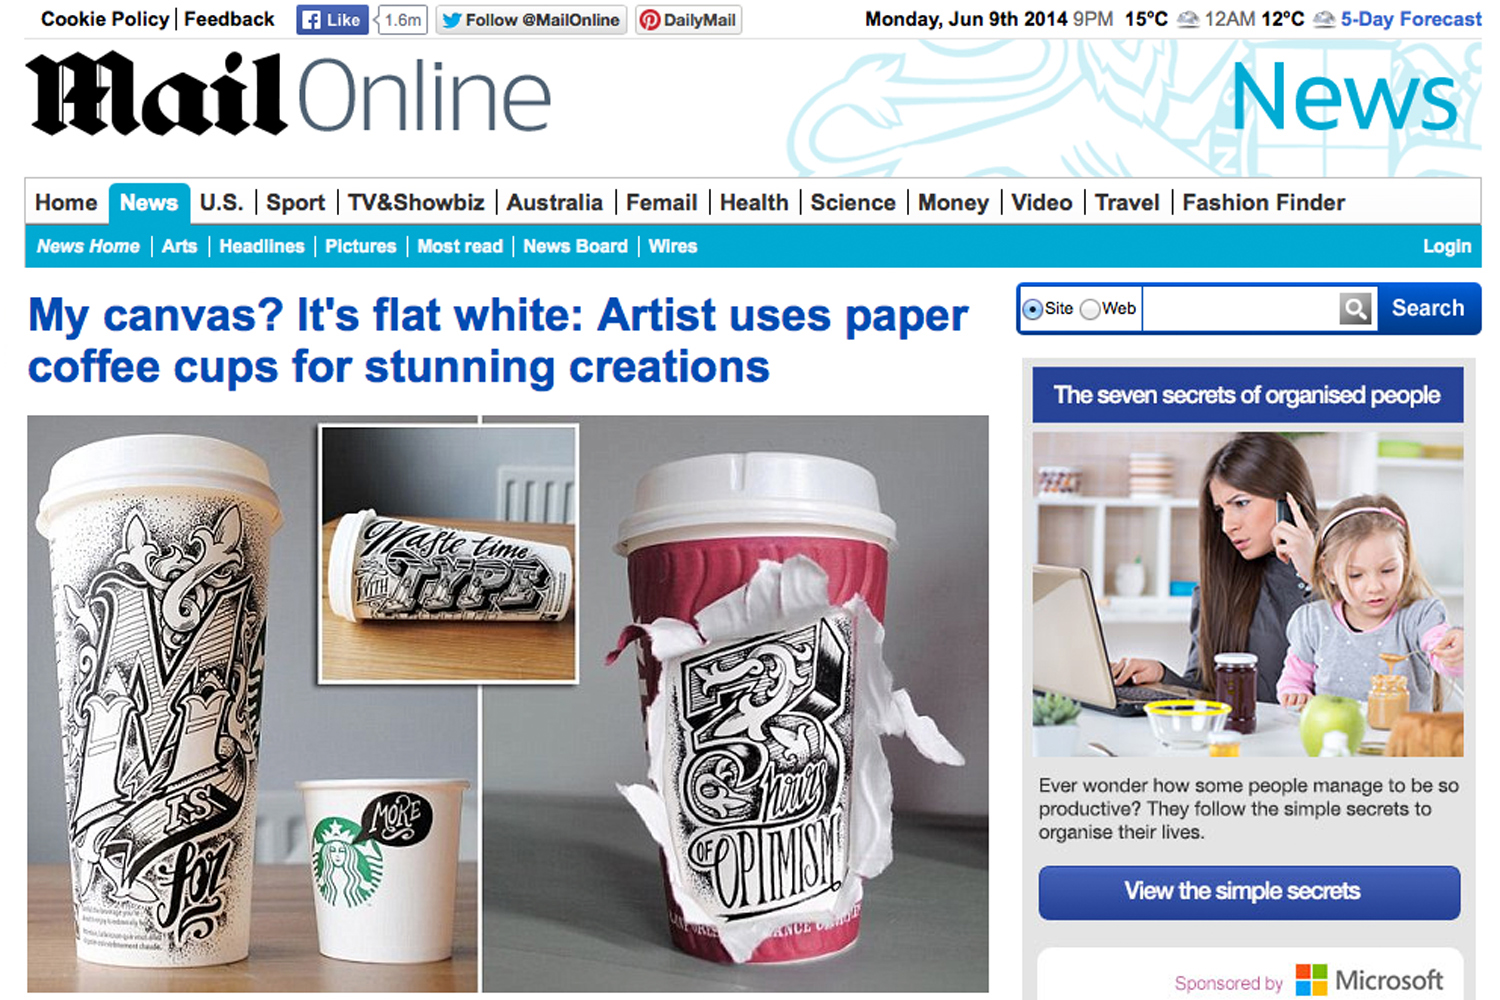 A feature on my hand lettered disposable coffee cups in The Daily Mail. The publication has an average daily circulation of 1,700,000 copies   and has over 100 million unique visitors per month to its website.